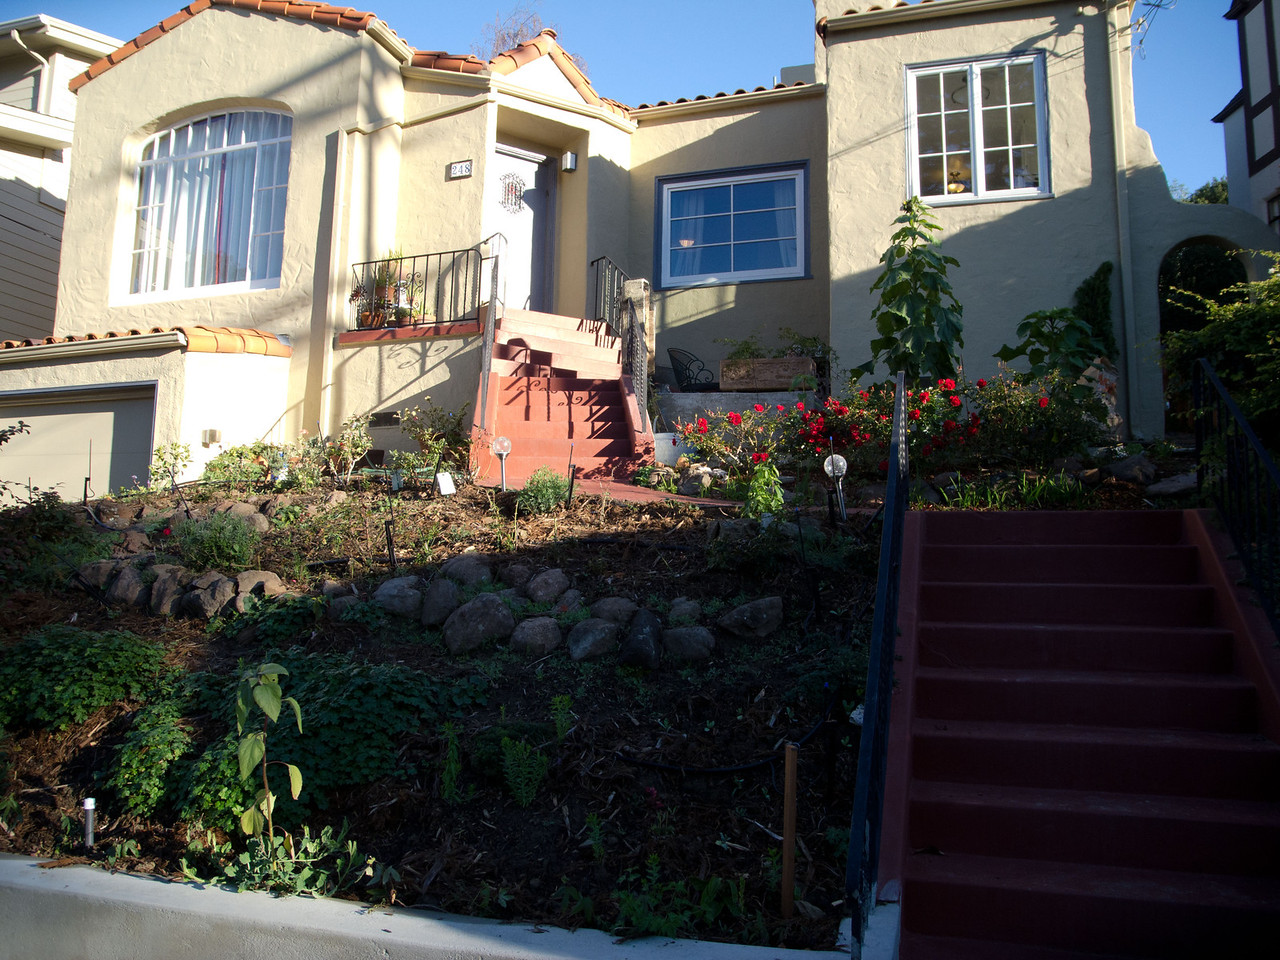 The house we bought in Oakland (248 Florence Ave)